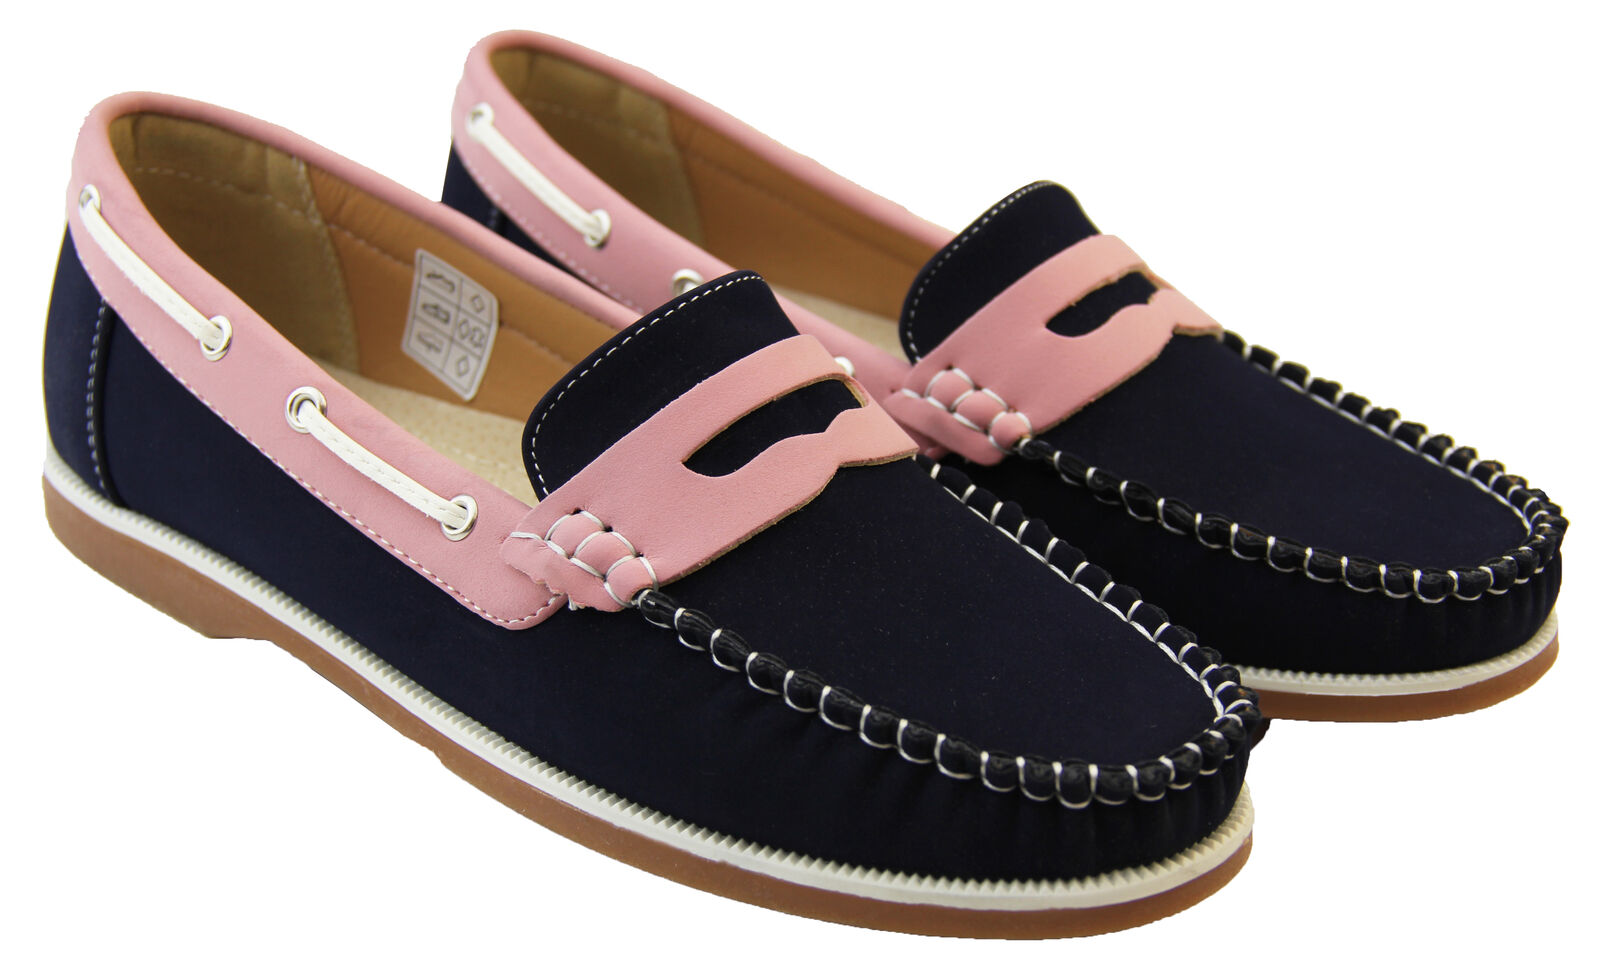 569829991f6 Womens Faux Leather Shoreside Smart Formal Moccasins Sailing Deck Shoes  Loafers Navy pink UK 8 for sale online